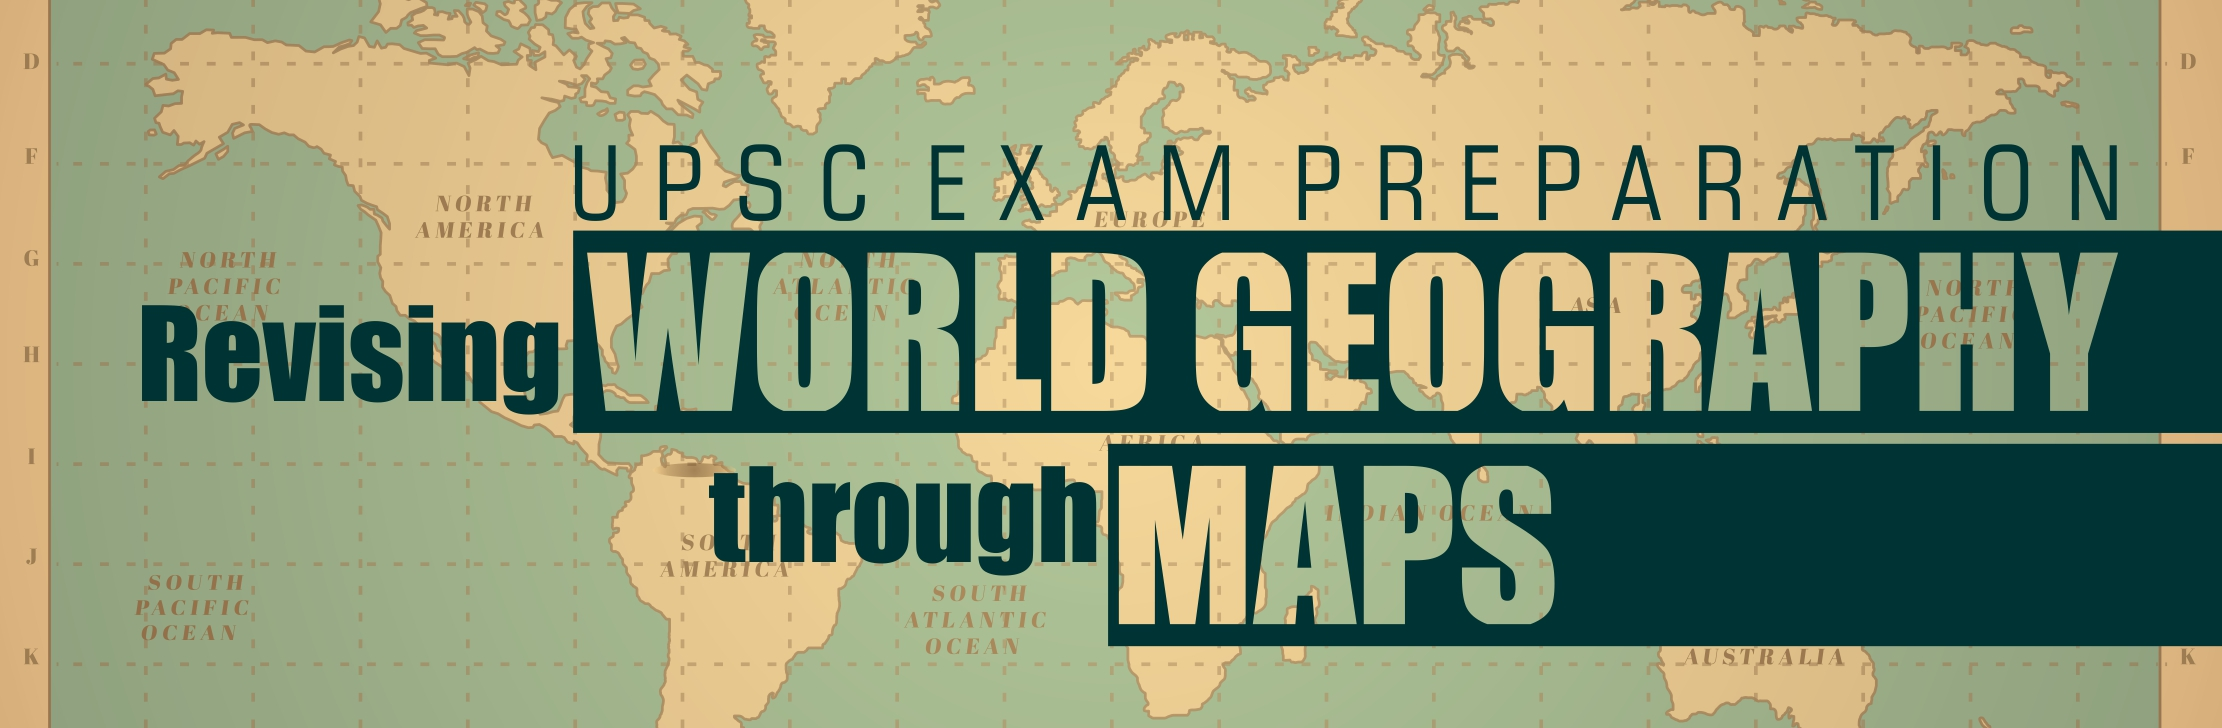 UPSC Exam Preparation Revising World Geography through